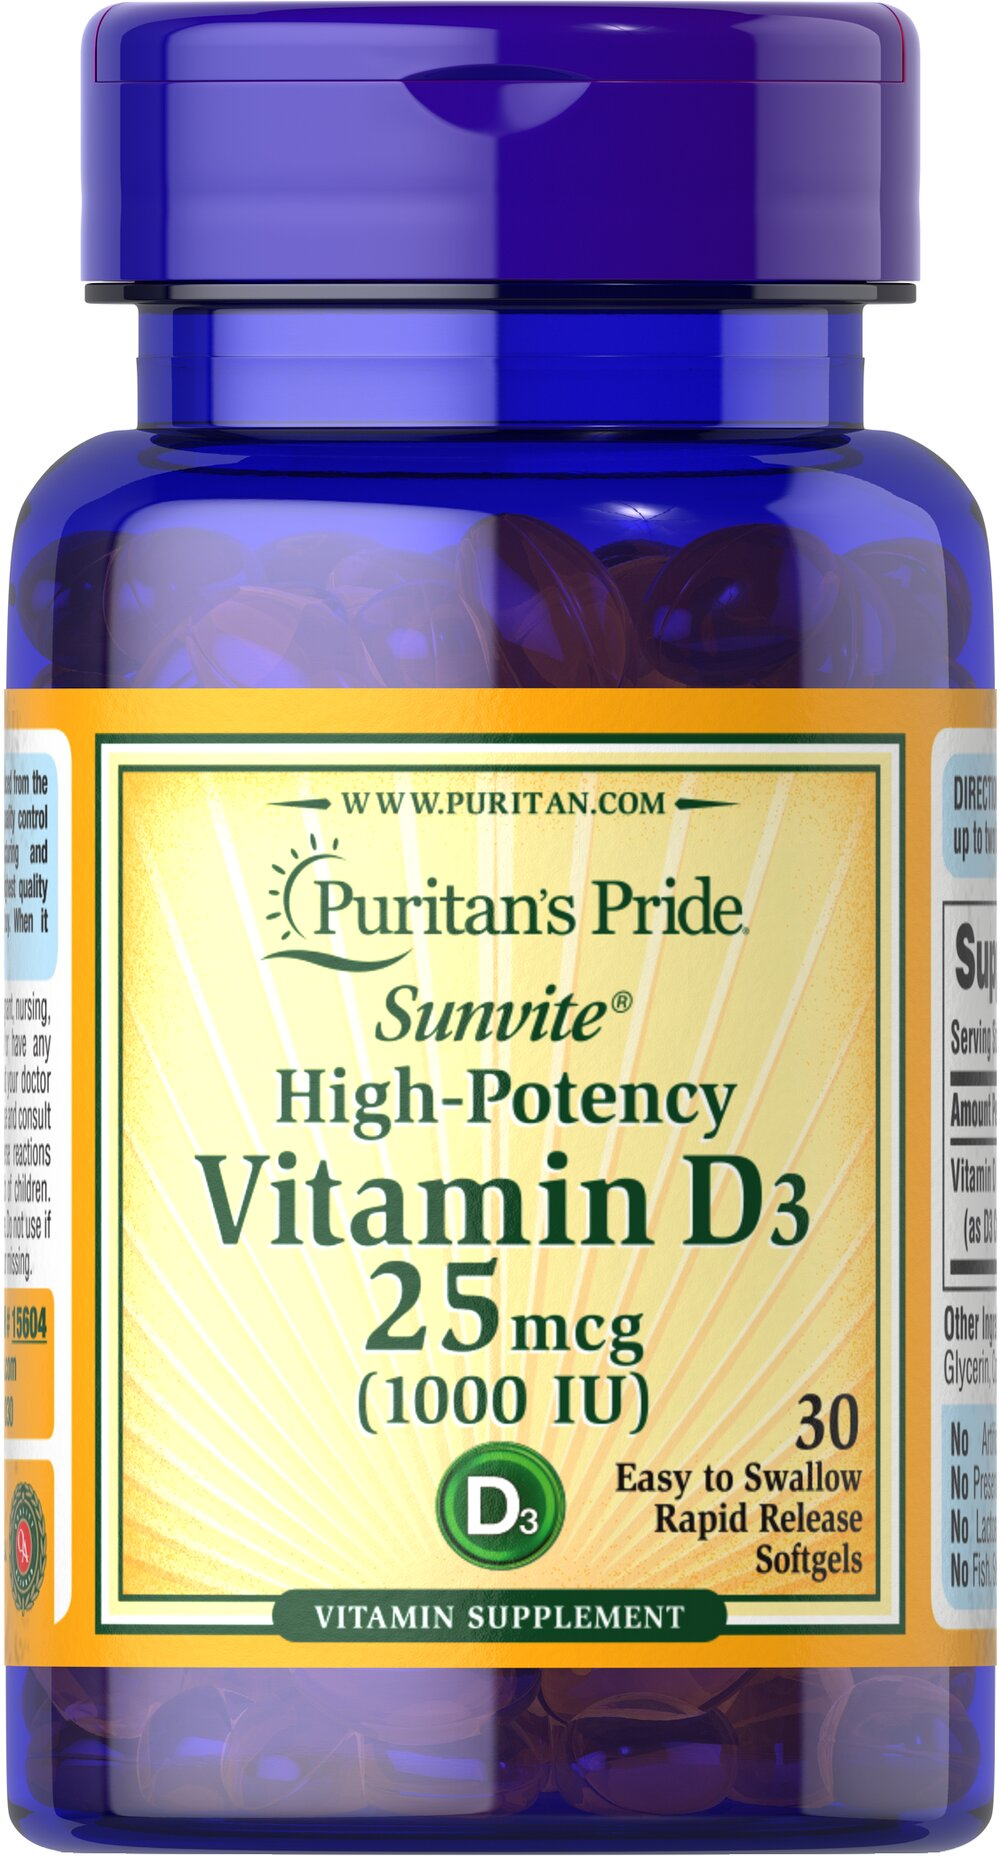 Vitamin D3 1000 IU  30 Rapid Release Softgels 1000 IU $1.19